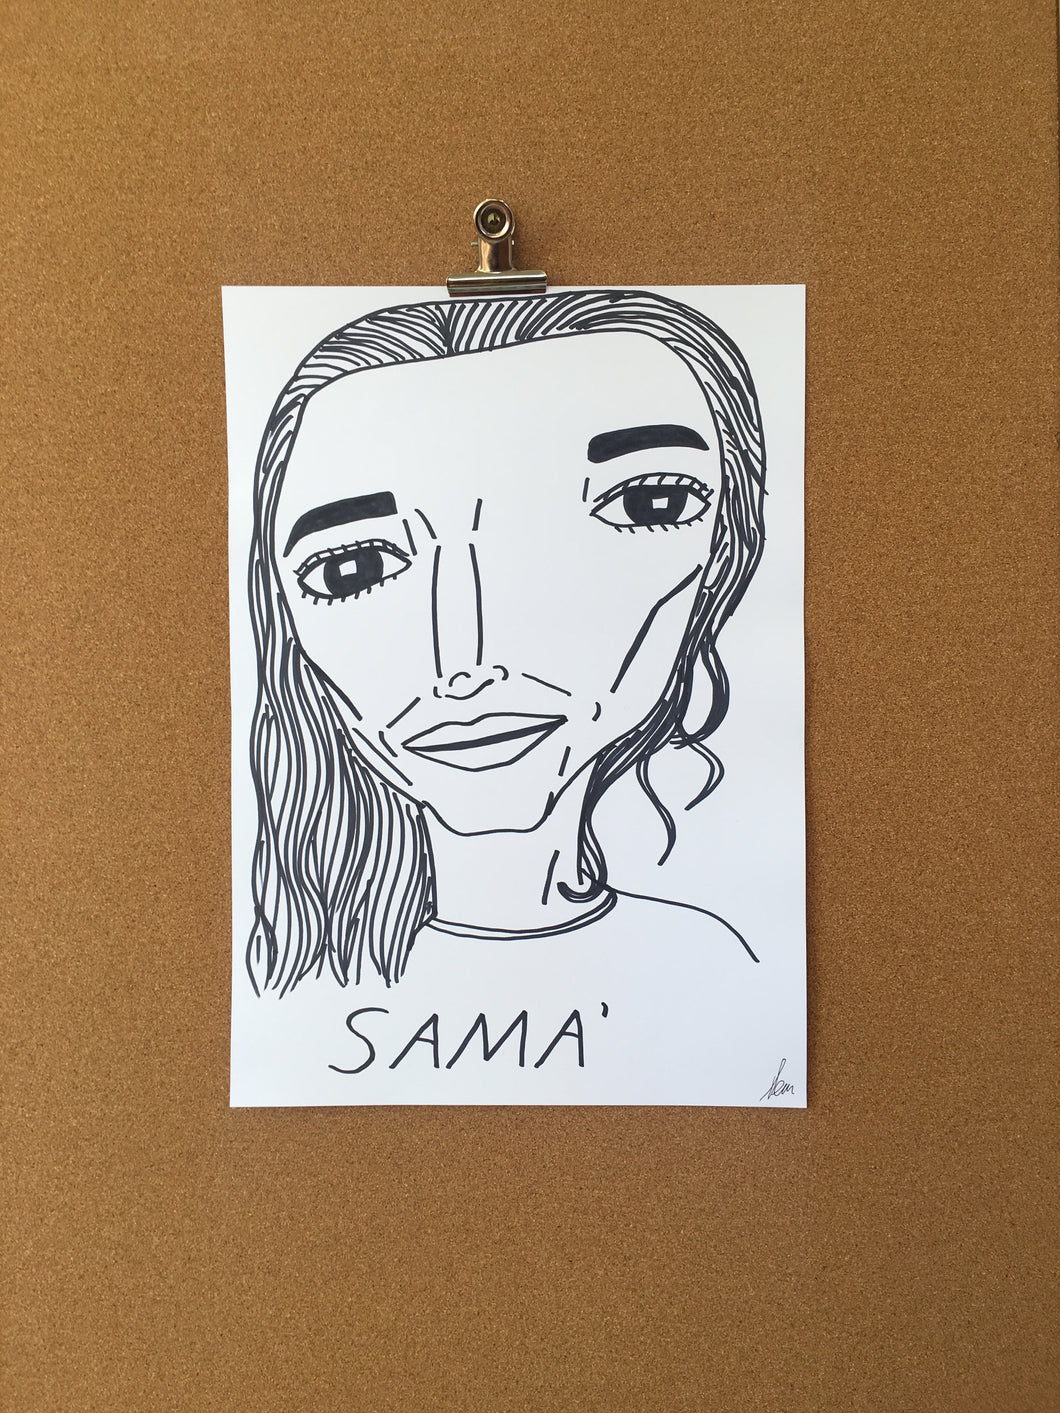 Badly Drawn SAMA' - Original Drawing - A3.